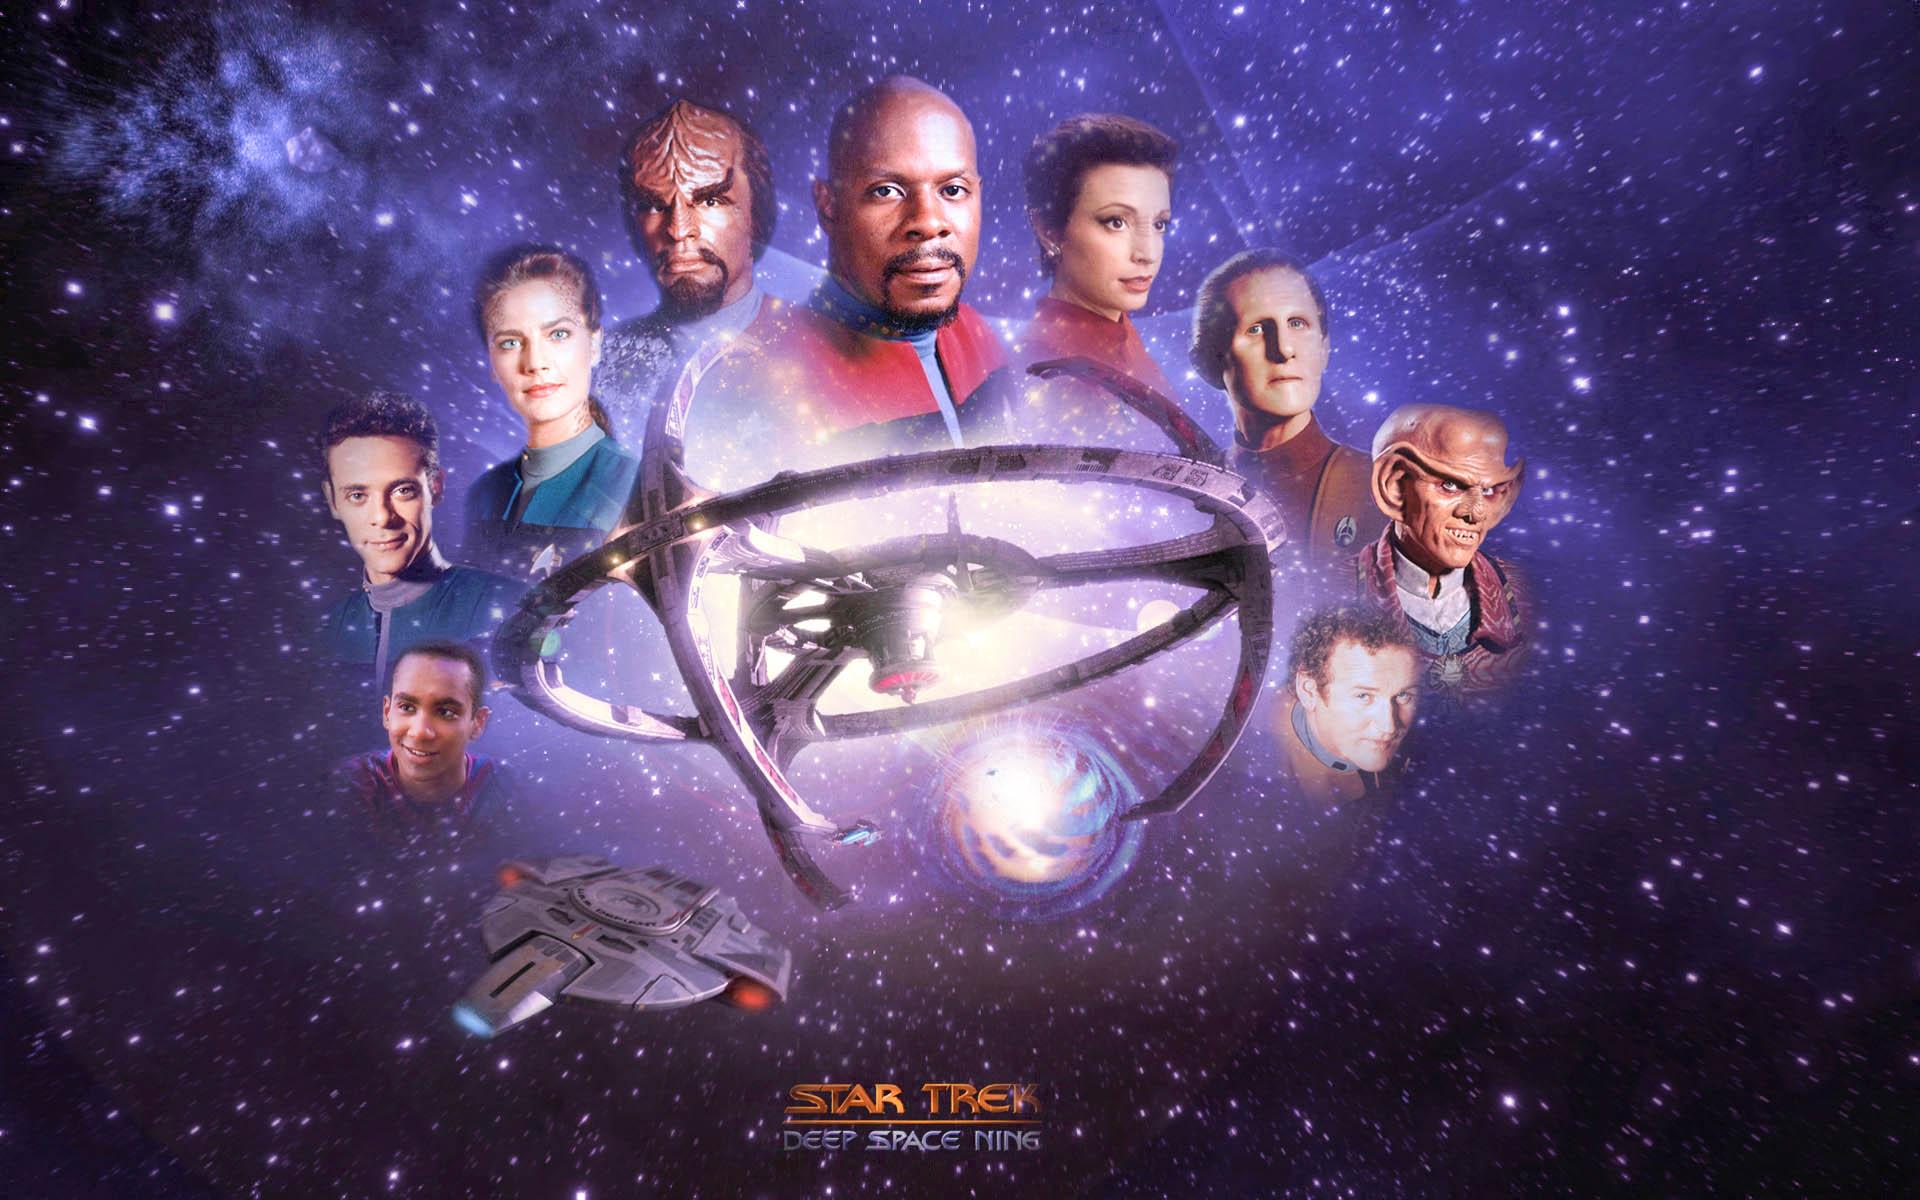 Star Trek Discovery Season 3: How to Watch the New